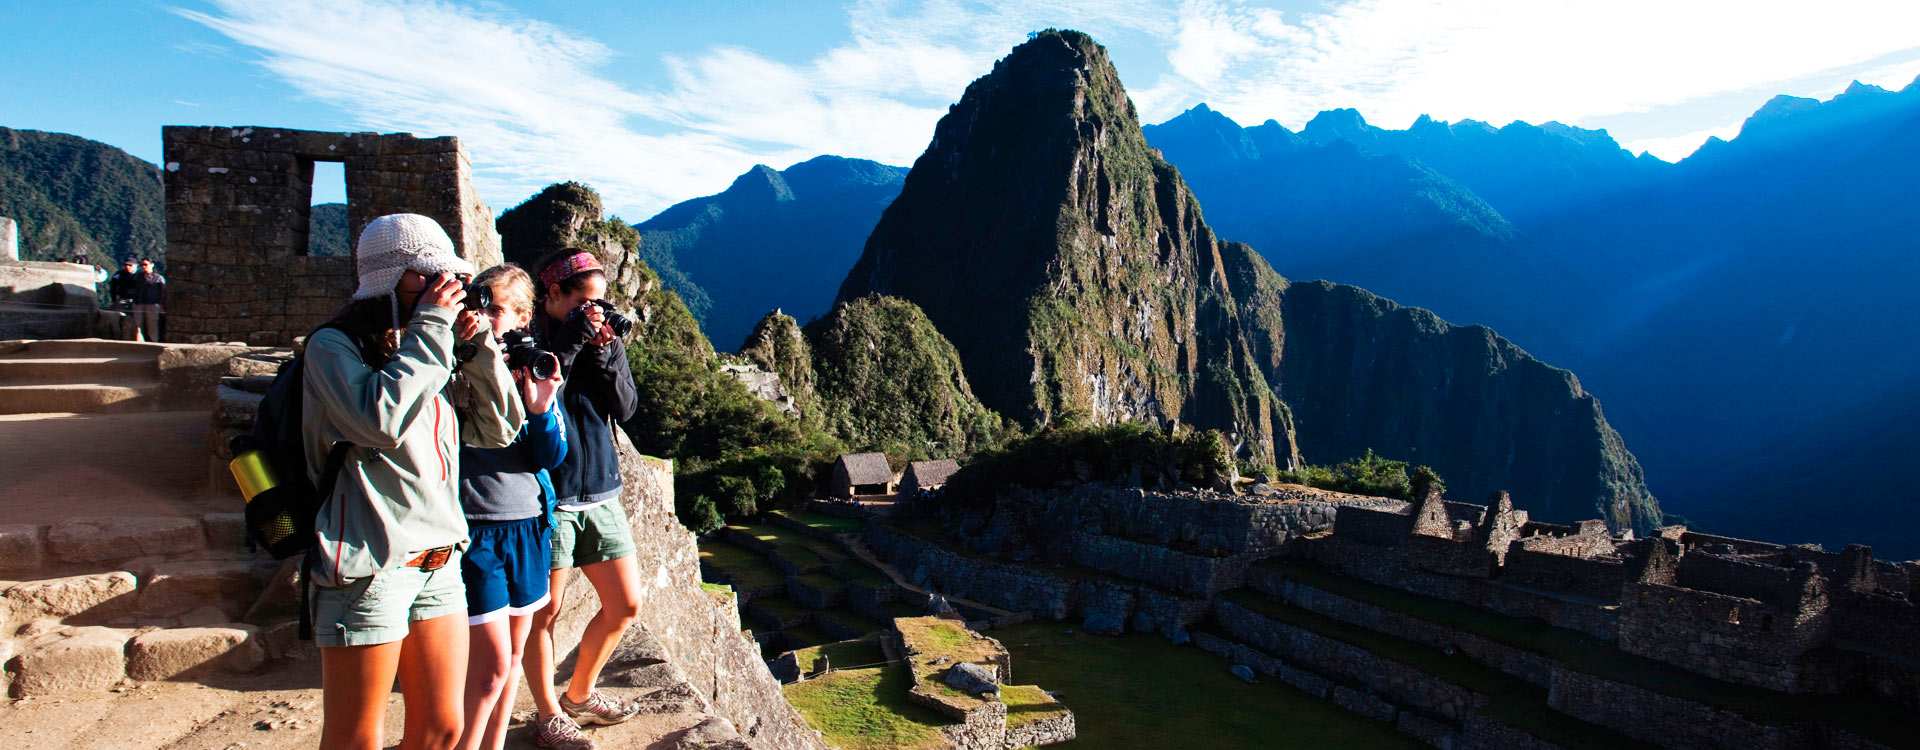 Peru Family Tour 17 Dagen